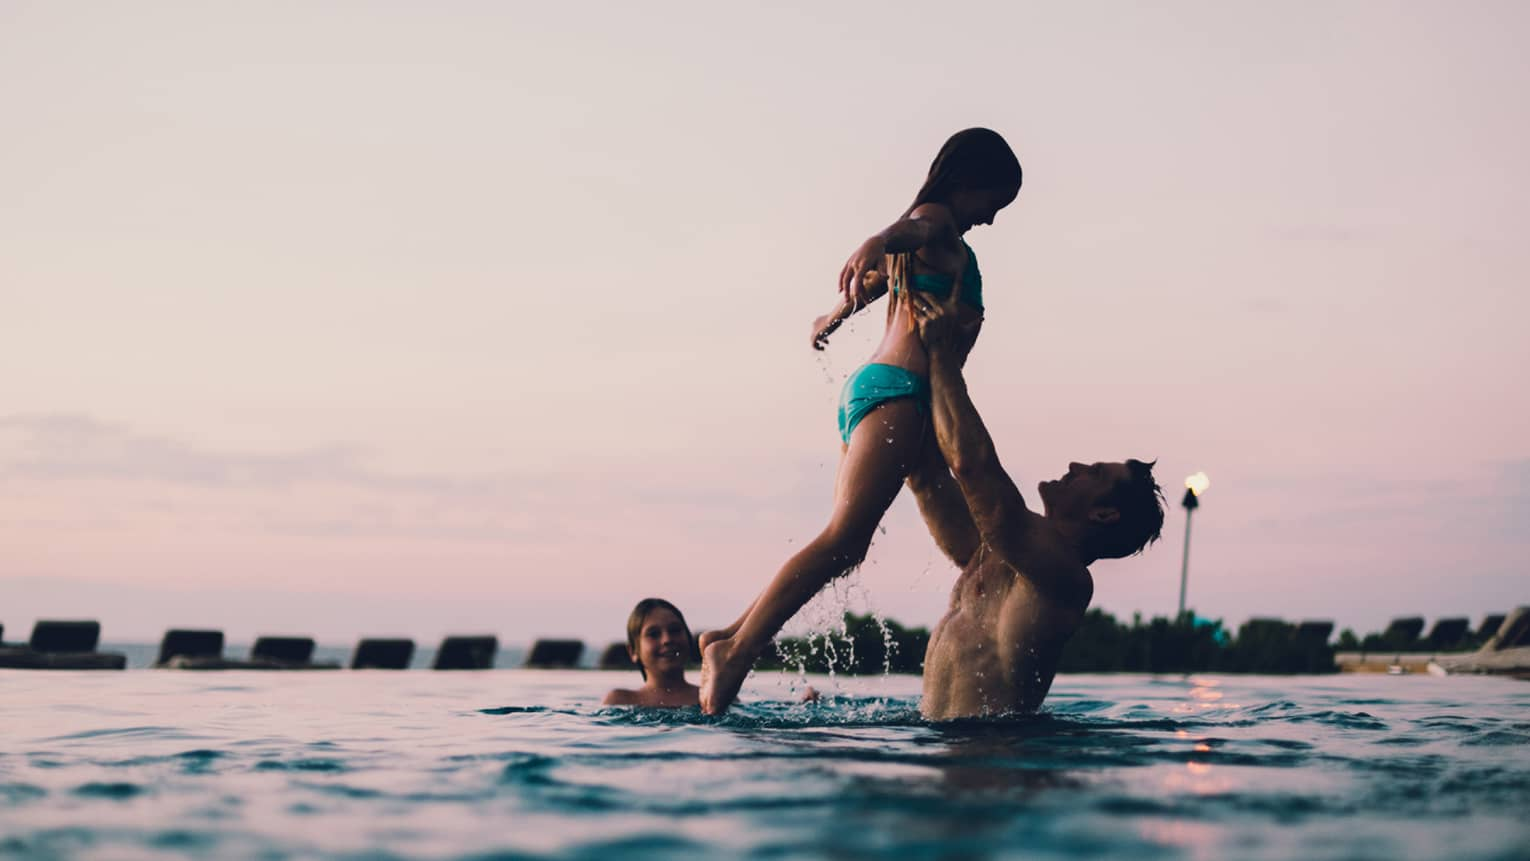 Dad lifts daughter in outdoor swimming pool as smiling boy watches, sunset